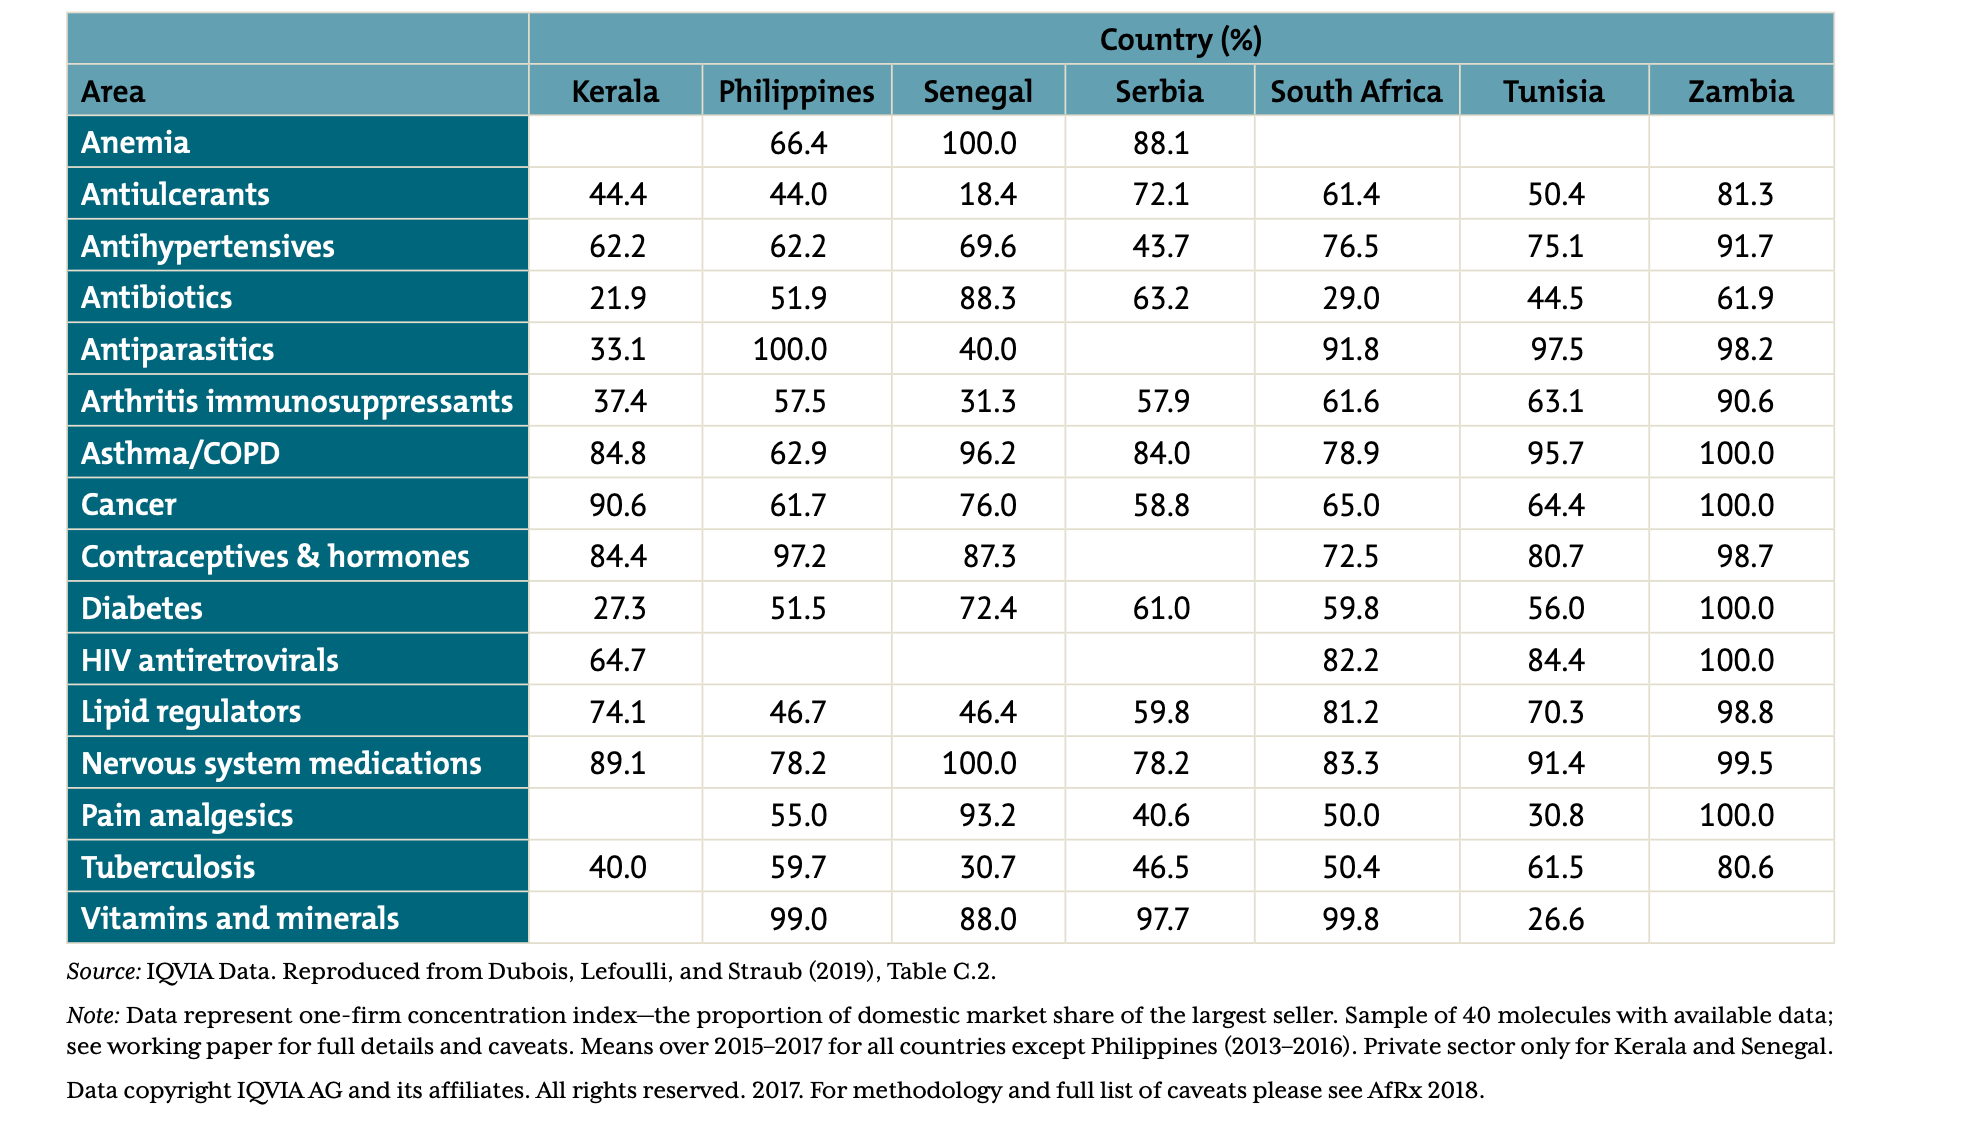 A table showing one-firm concentration index by therapy area for selected countries/states (sample of 40 molecules)